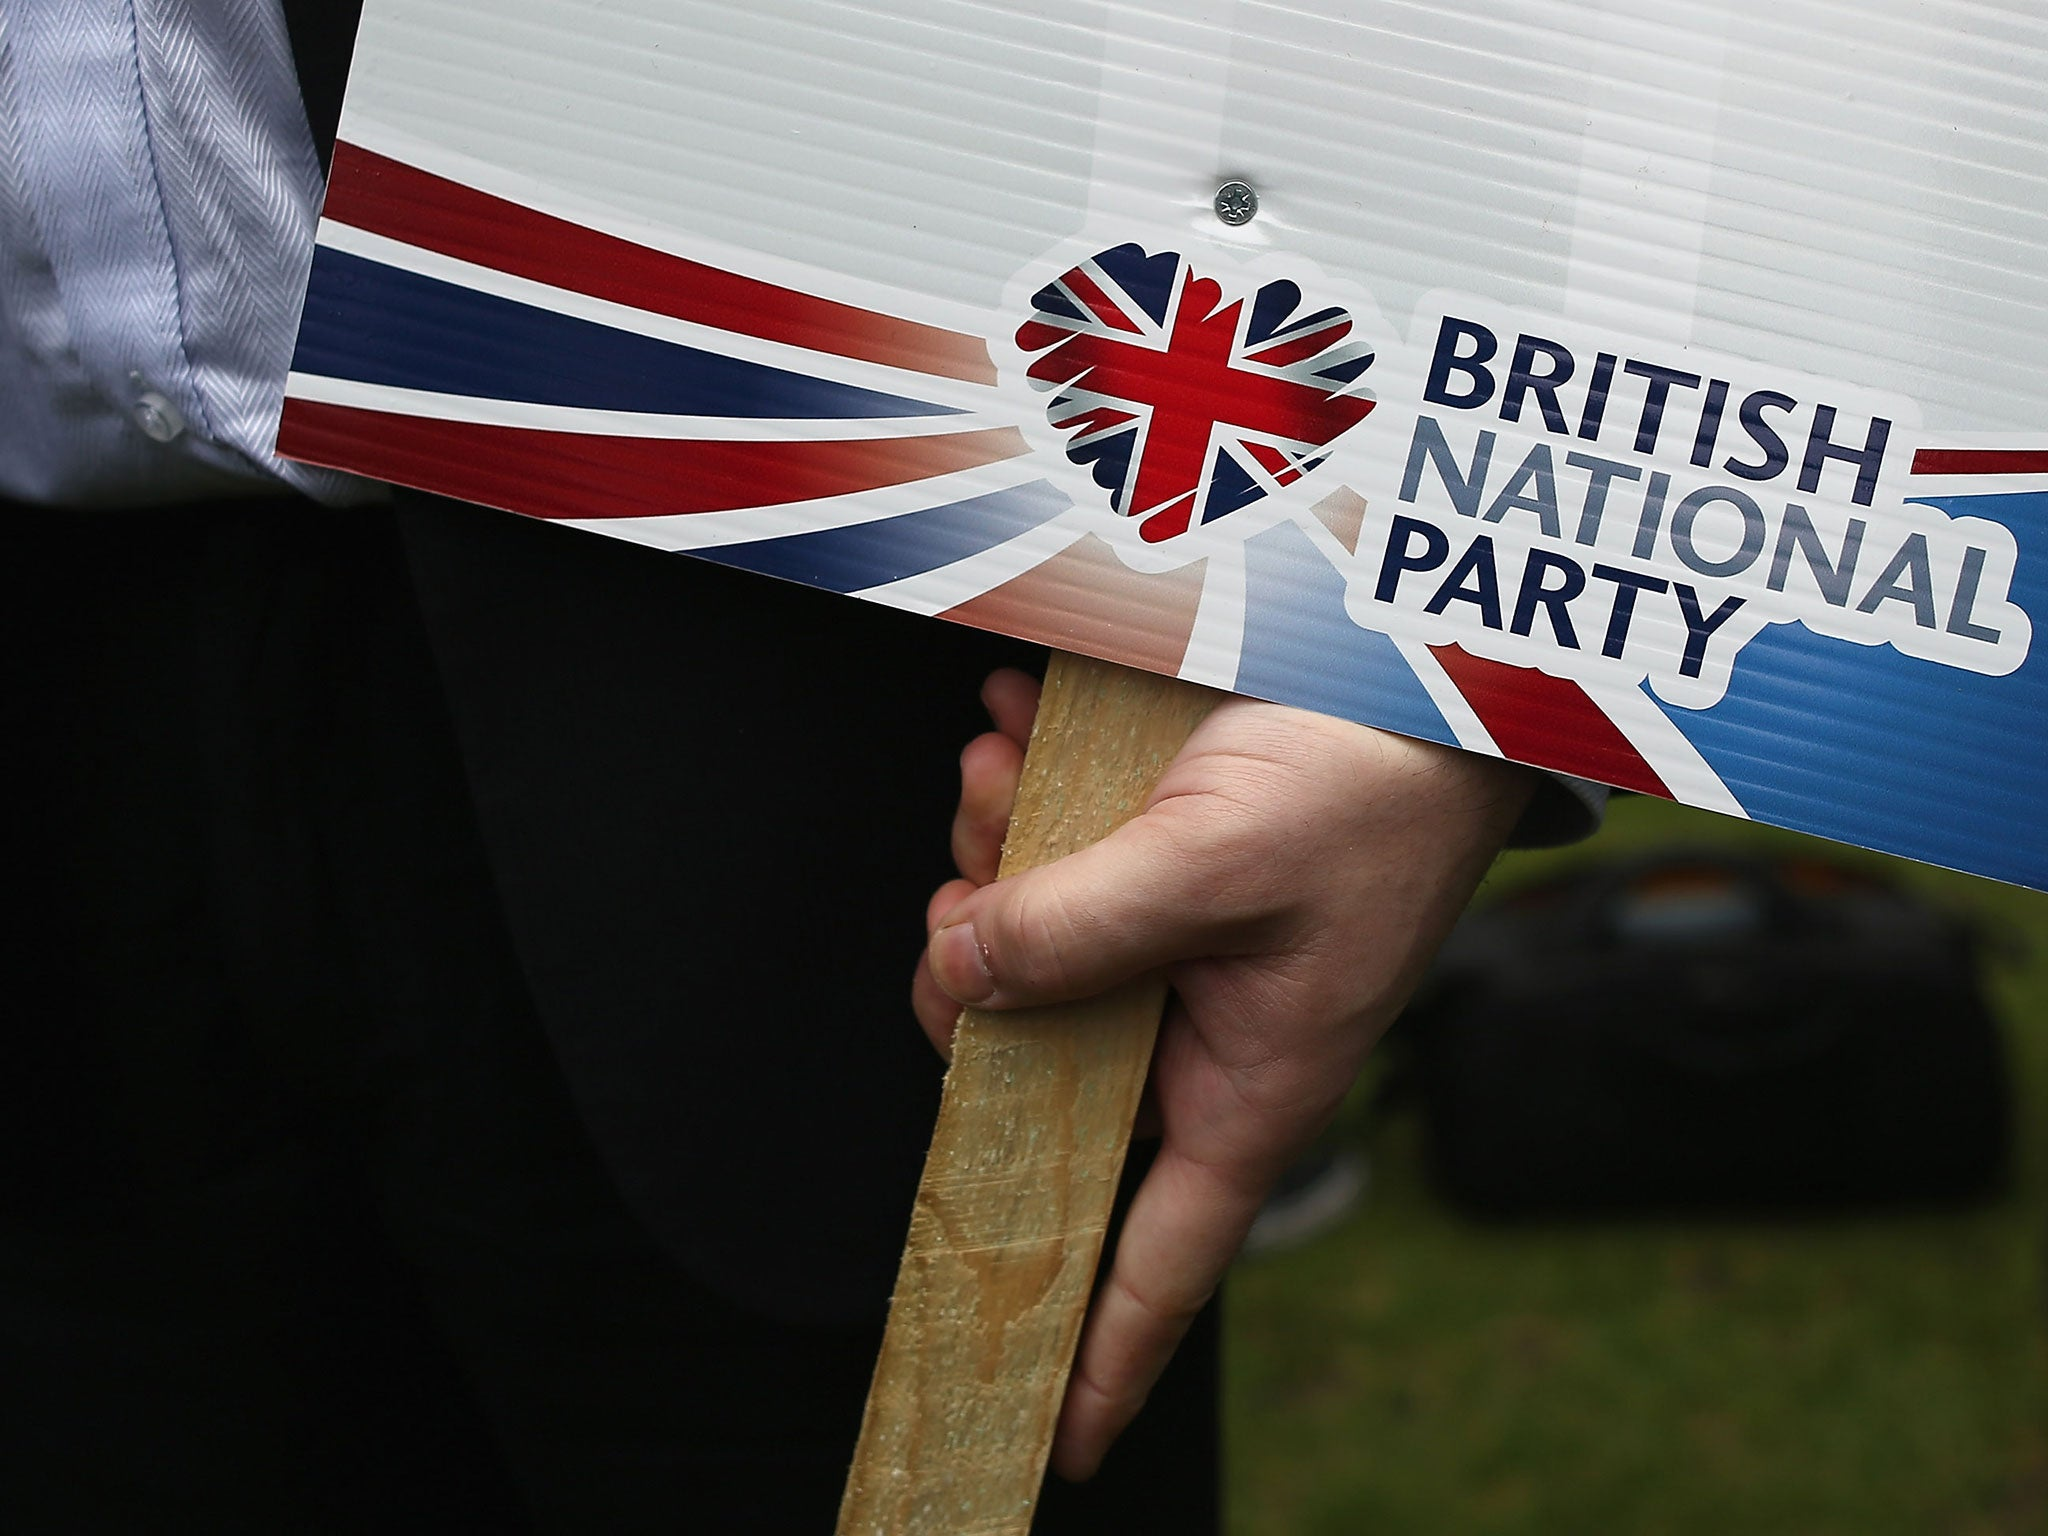 The BNP has launched a campaign against mosque plans that 'don't exist'